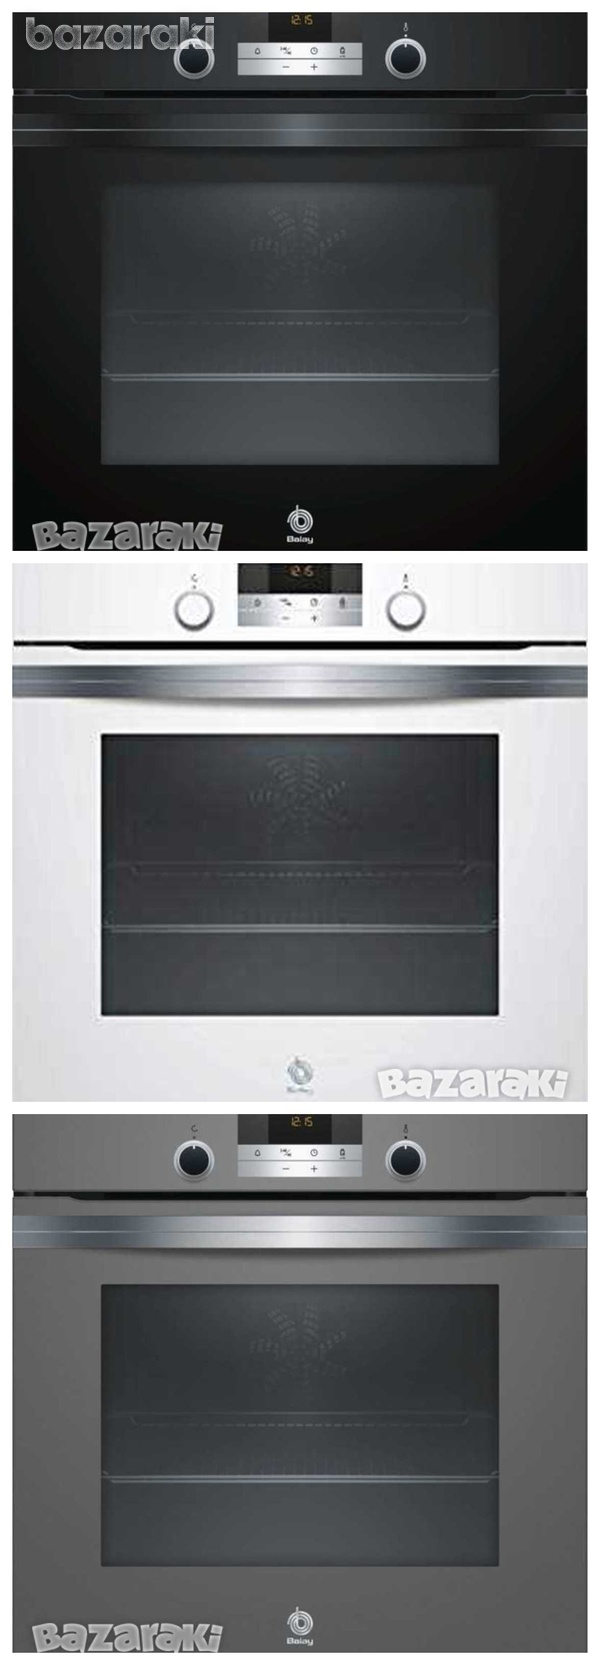 Balay 3hb5358a0 multifunction aqualysis oven 60cm 71ltrs in 3 colors-1